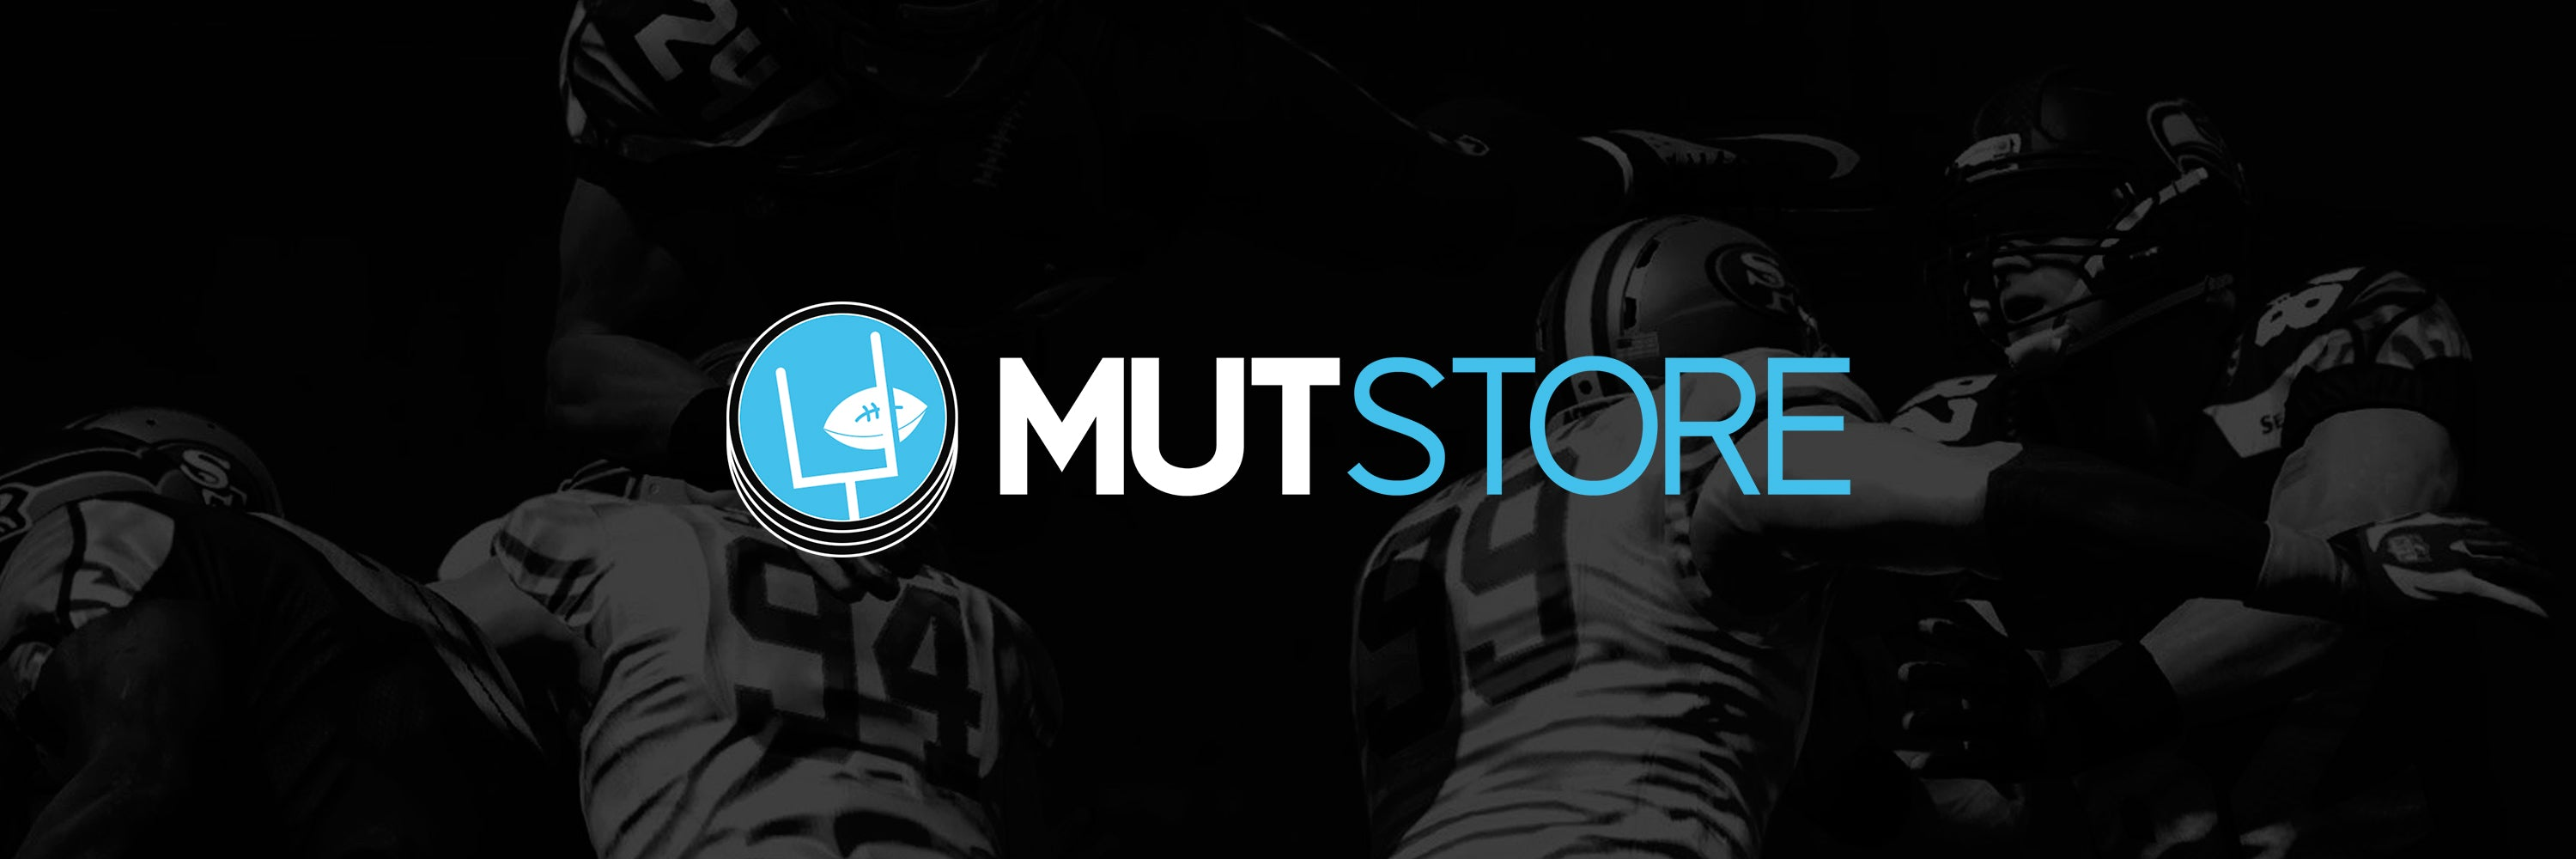 About MutStore.com I Why buy MUT Coins from us?